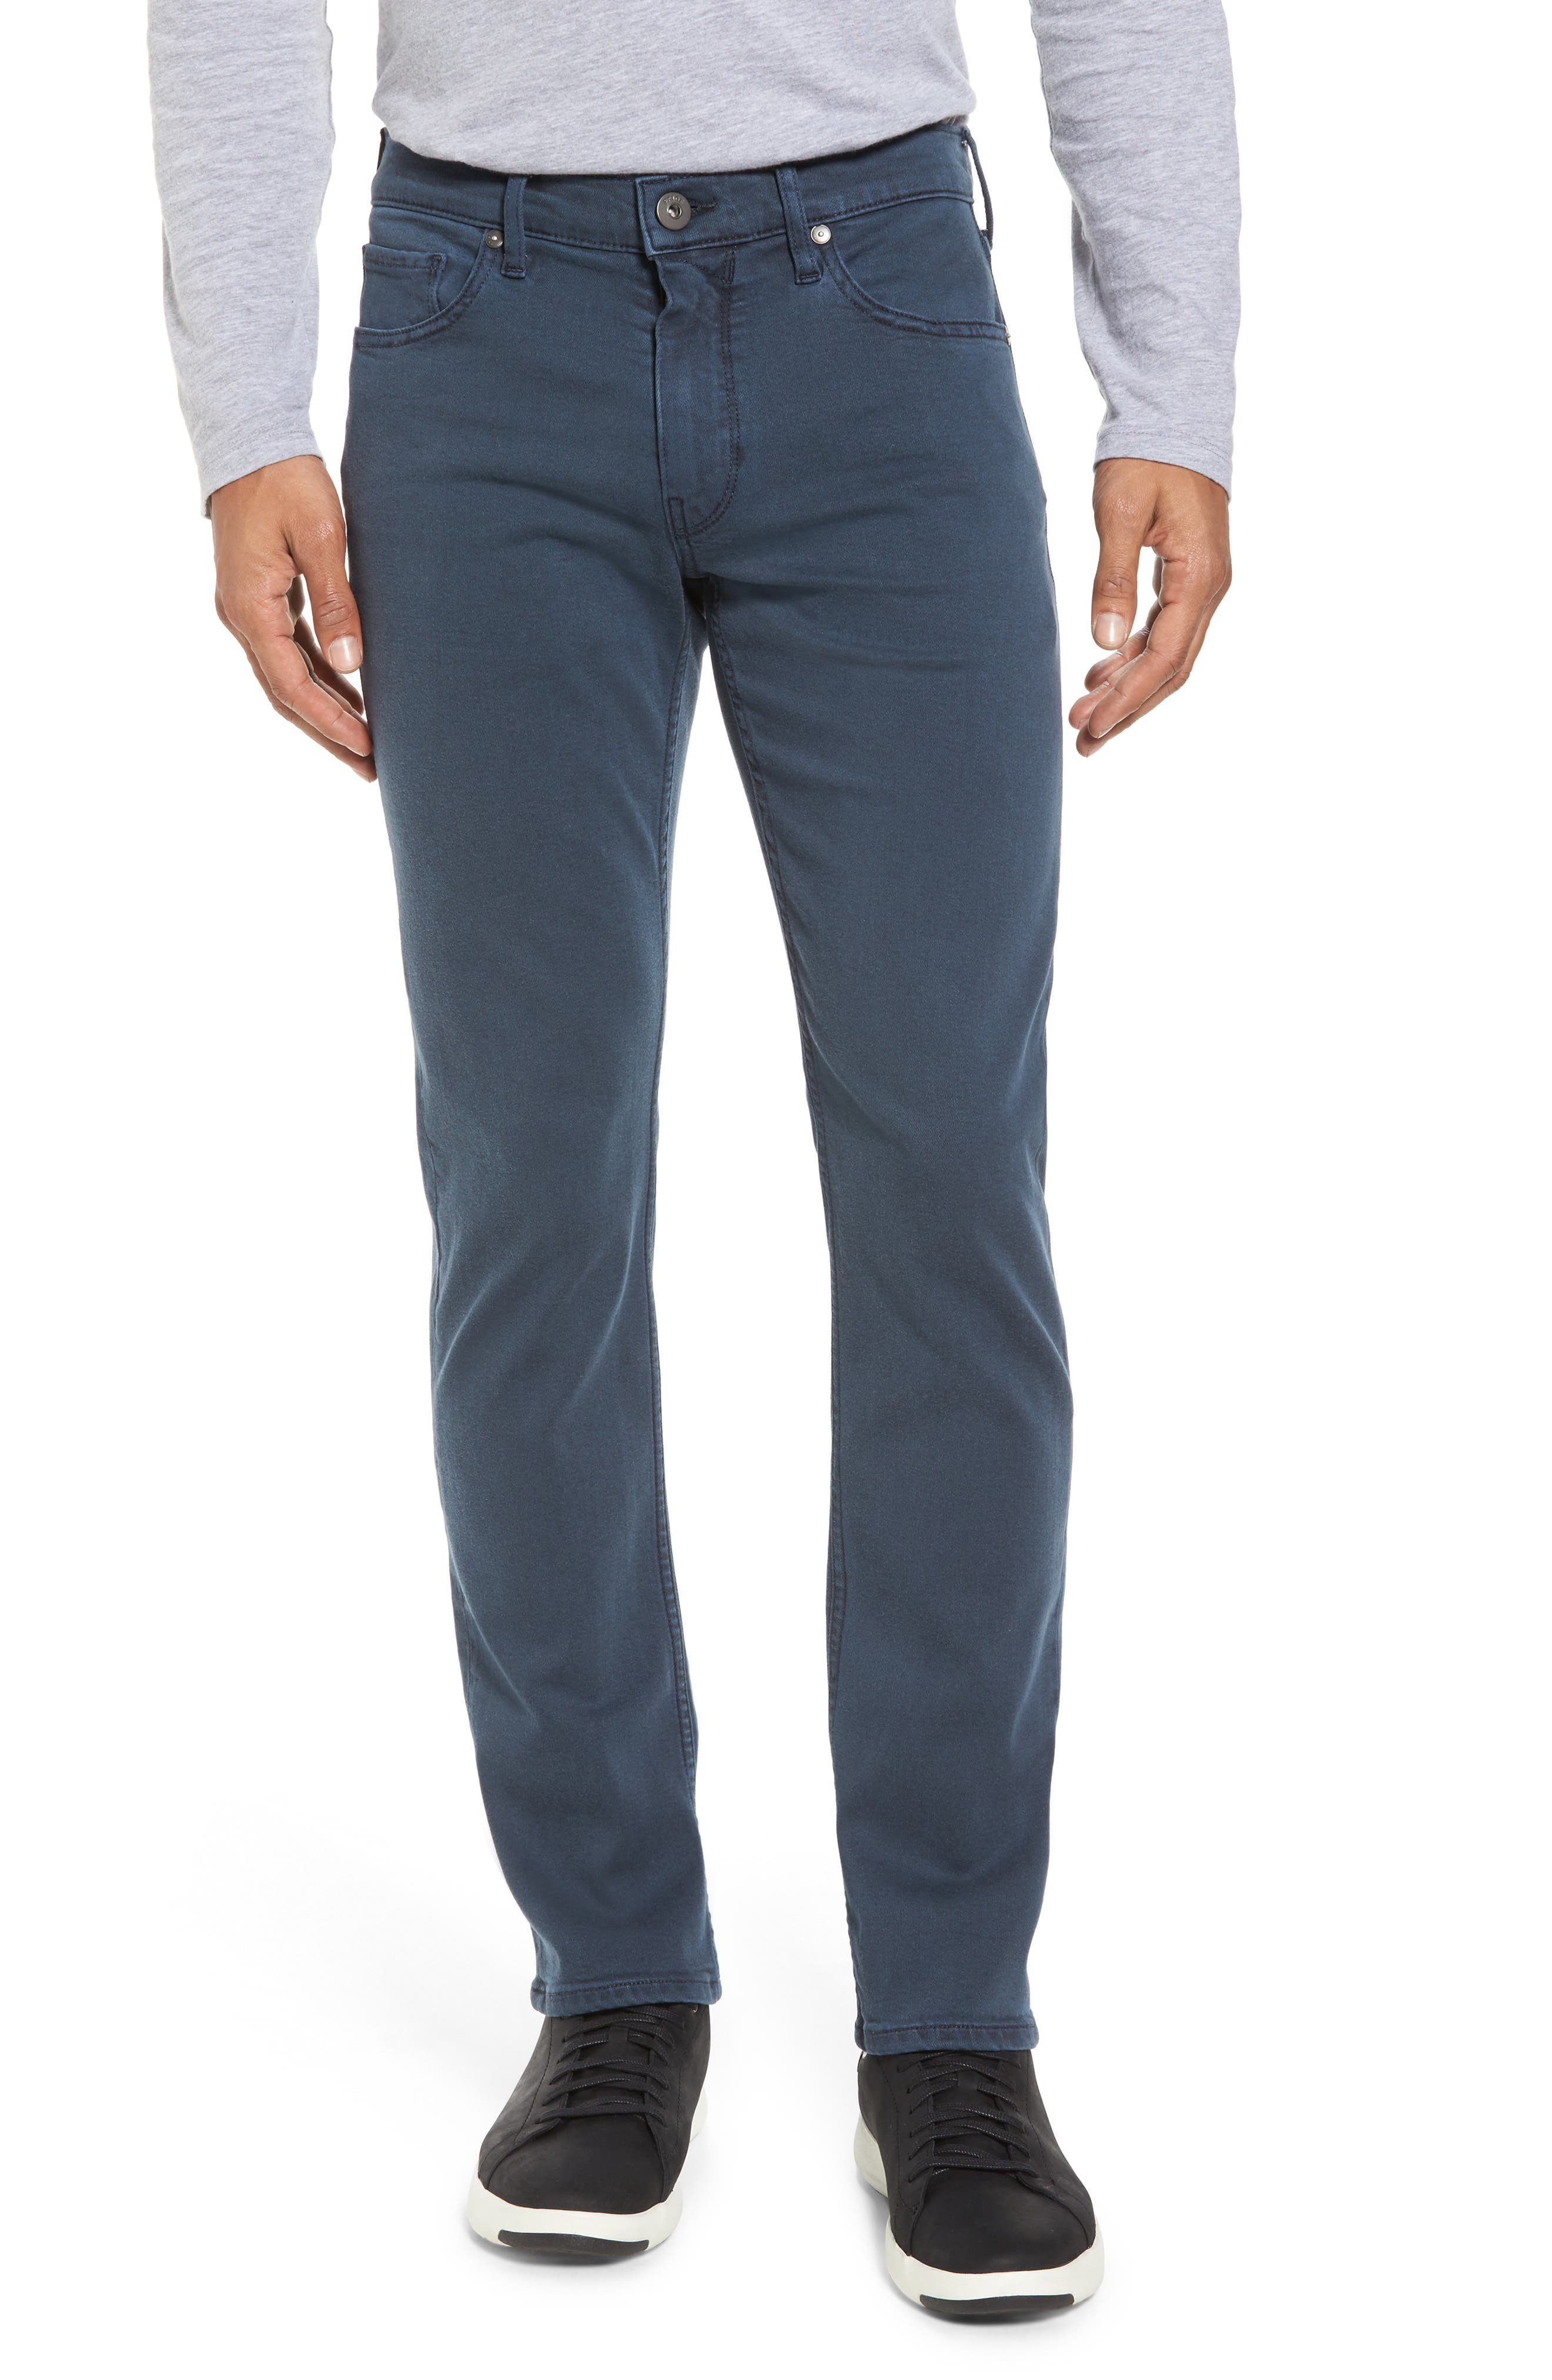 Lennox Slim Fit Jeans,                         Main,                         color, VINTAGE AMALFI